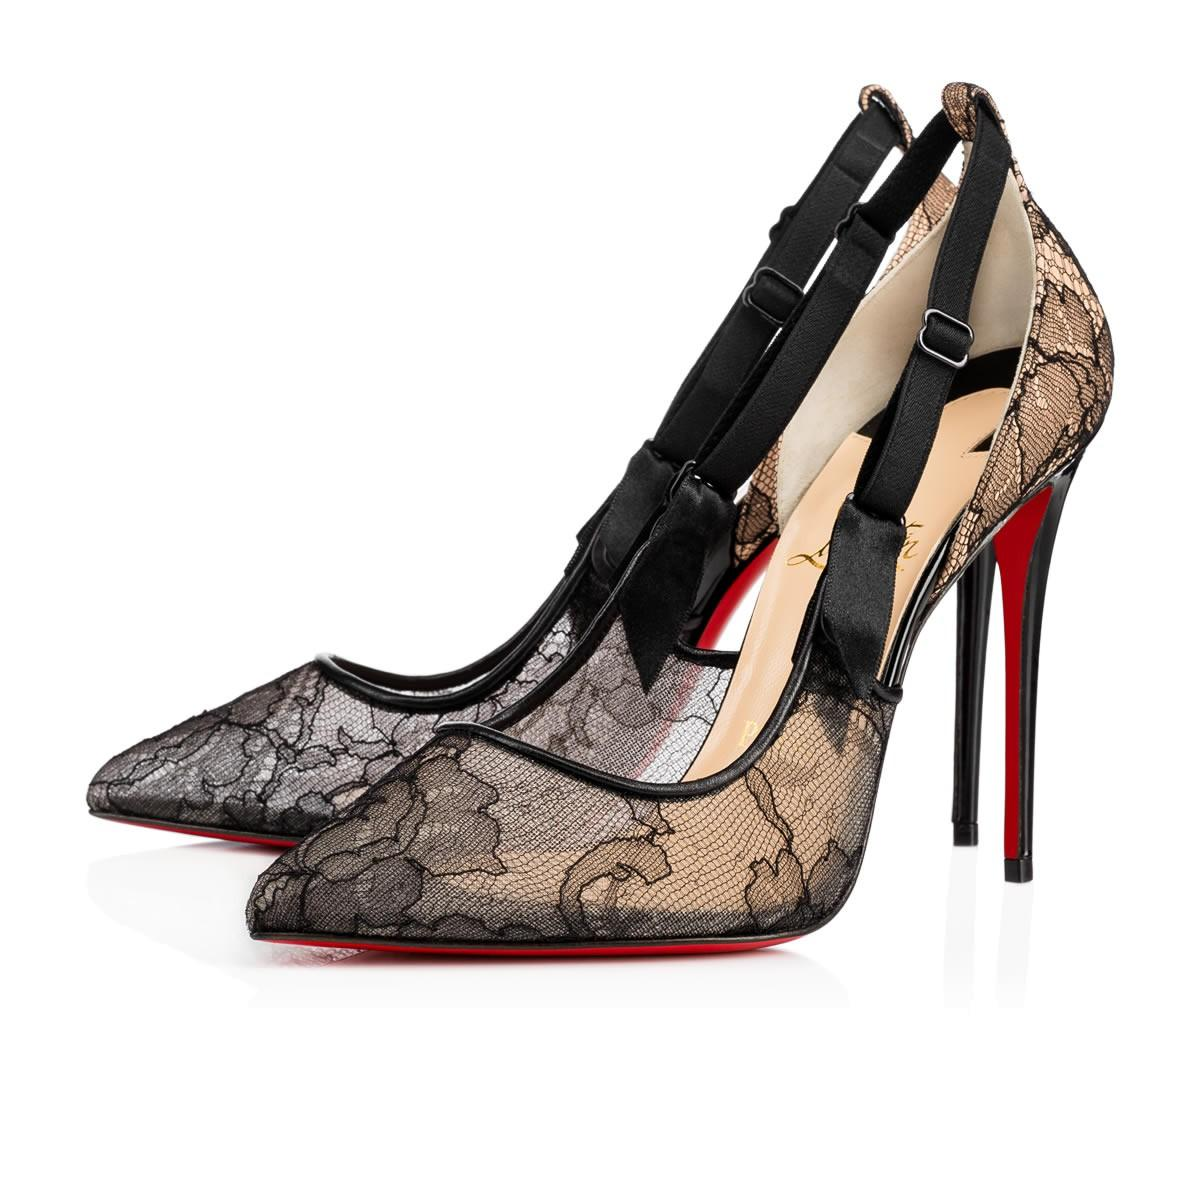 8e9702fc5e8 authentic christian louboutin shoes sale